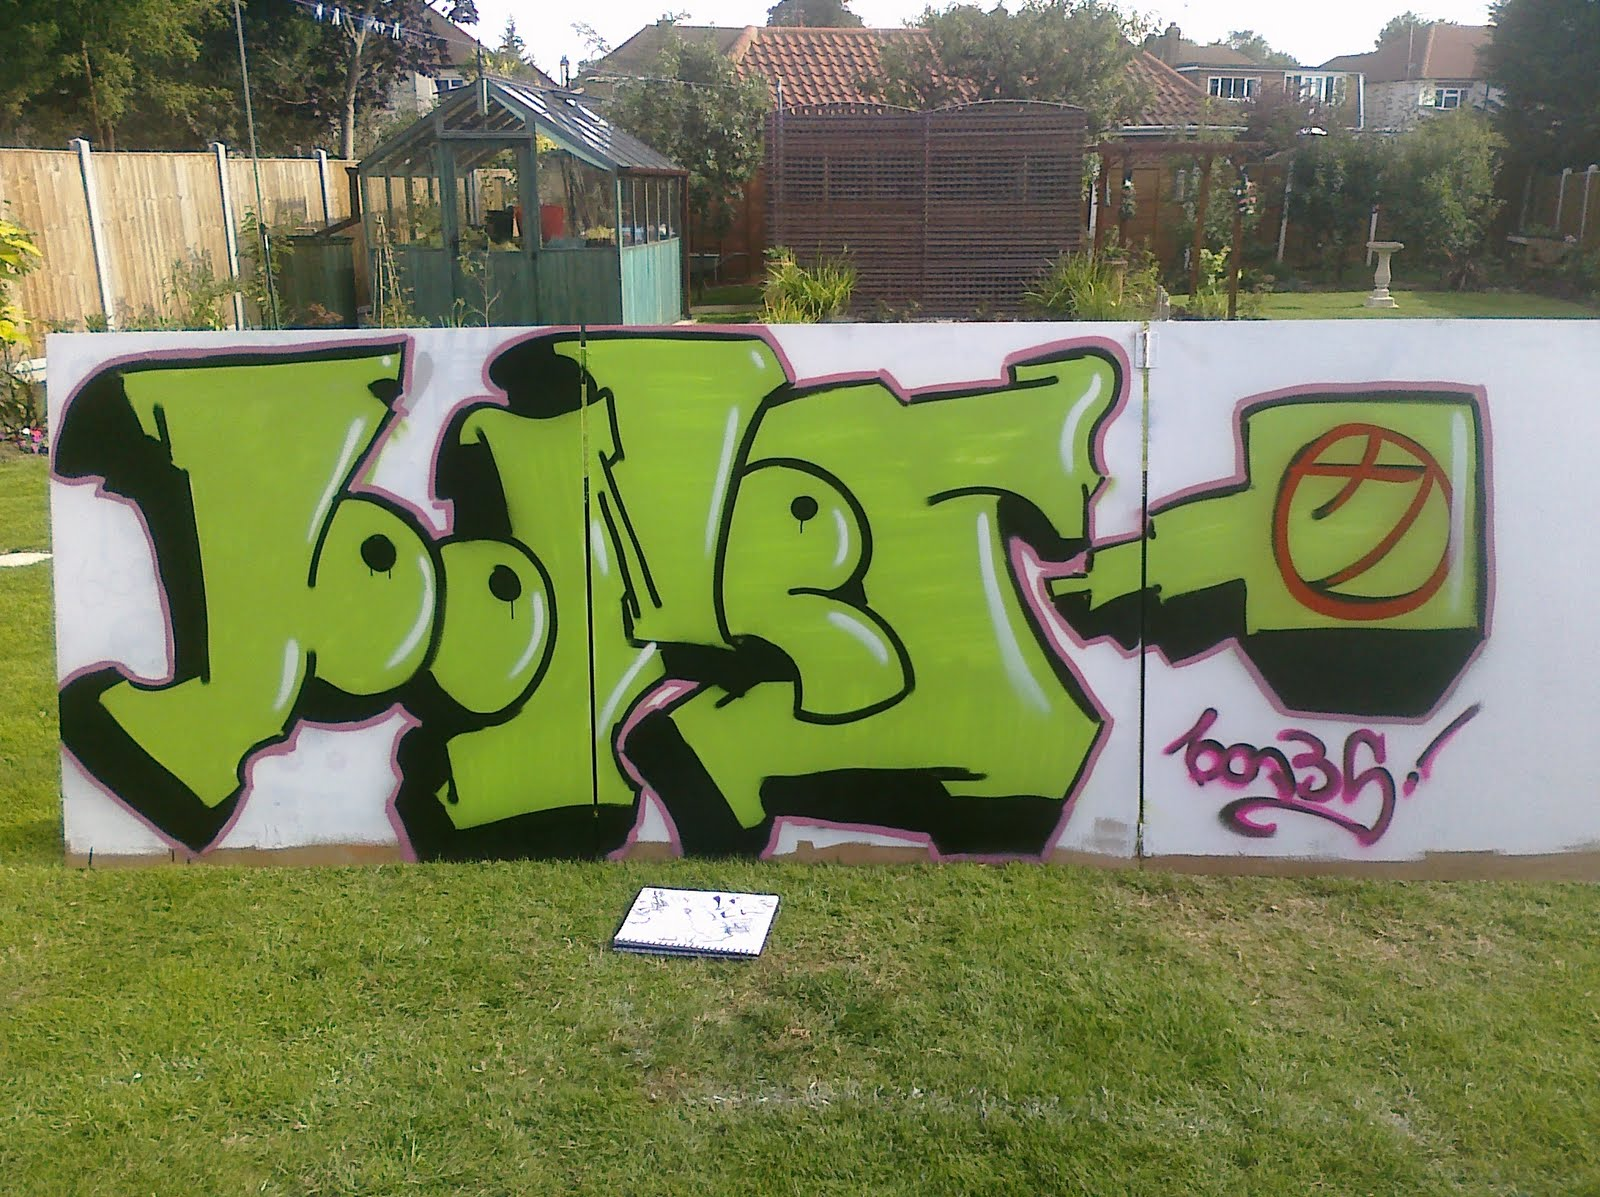 Graffiti Spray Paint Related Keywords Suggestions Graffiti Spray Paint Long Tail Keywords